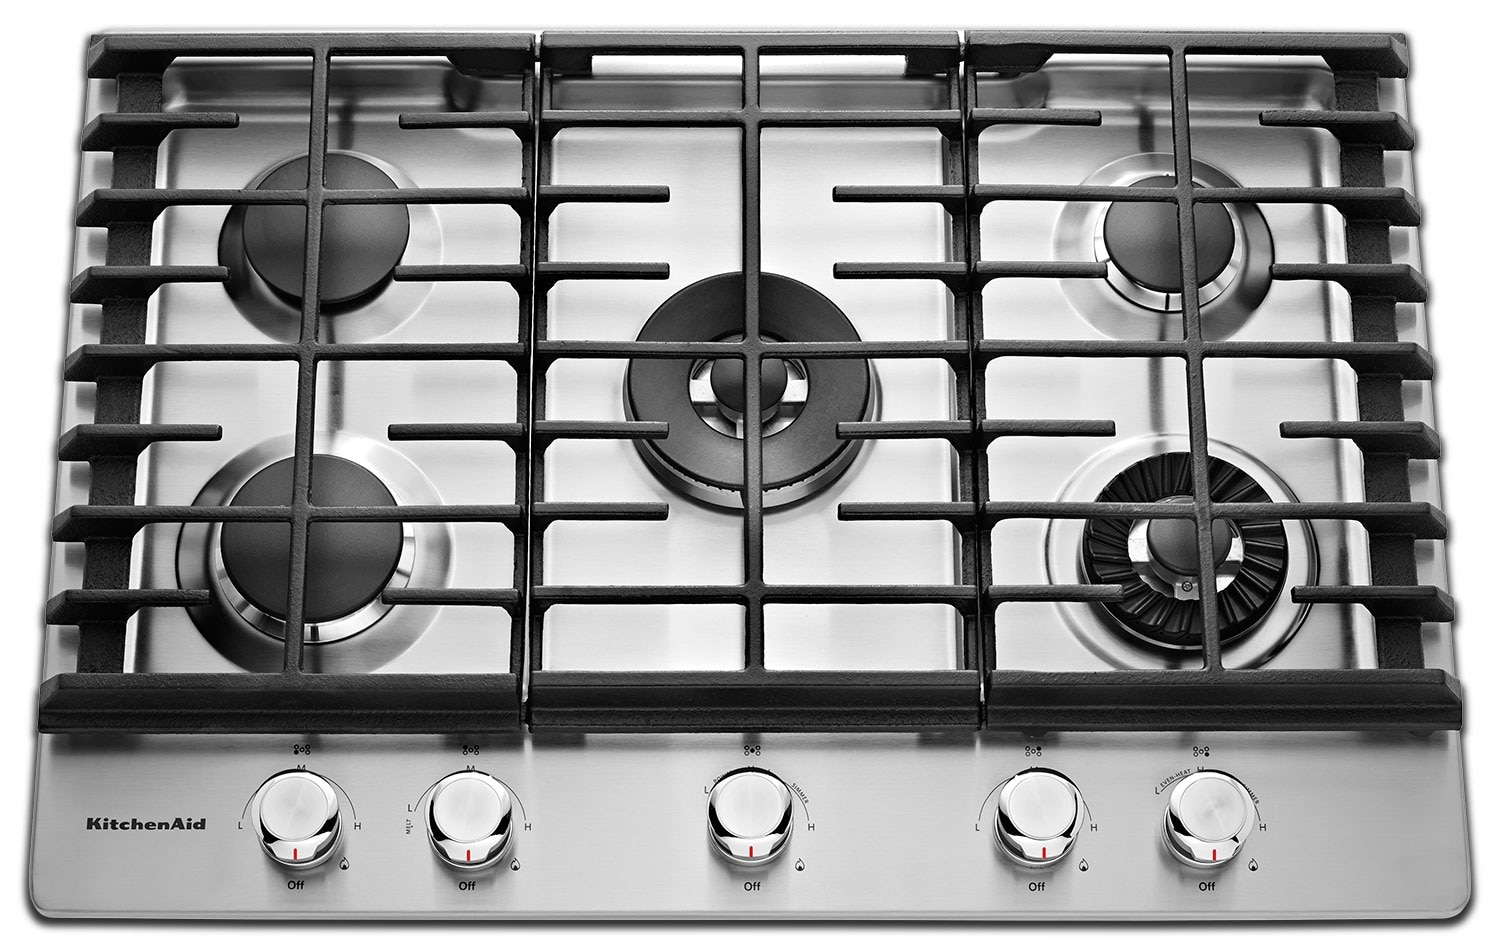 Cooking Products - KitchenAid Gas Cooktop KCGS950ESS